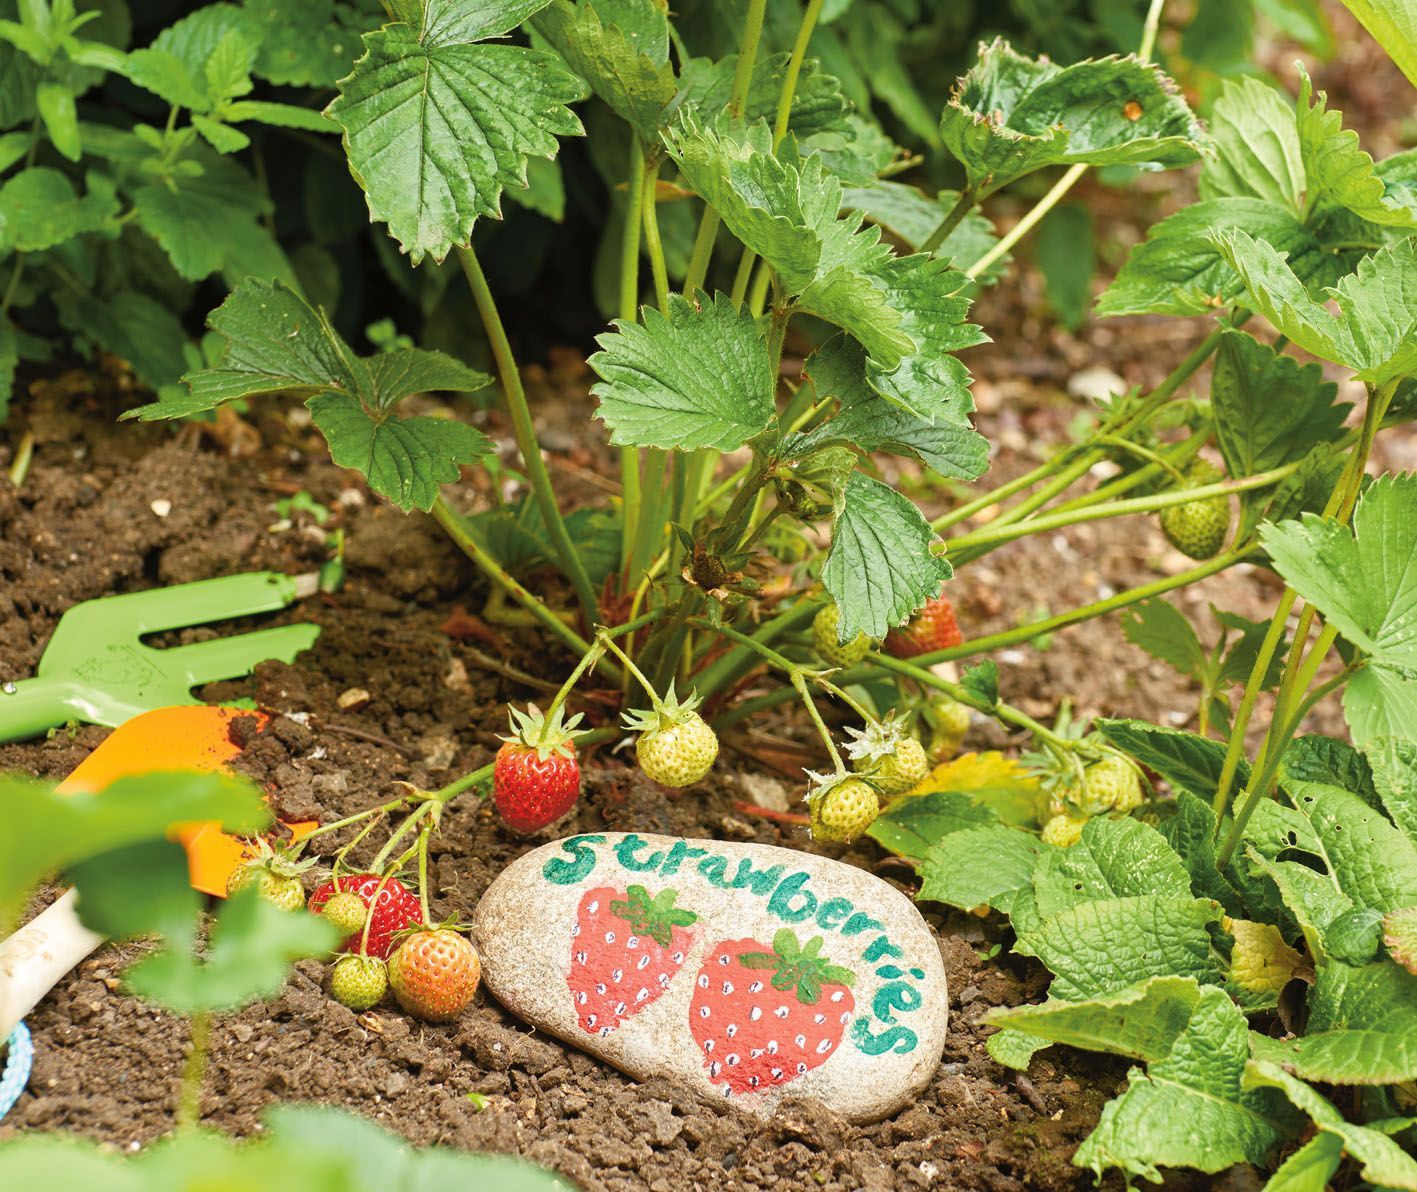 Encourage your kids by planting their own fruit and